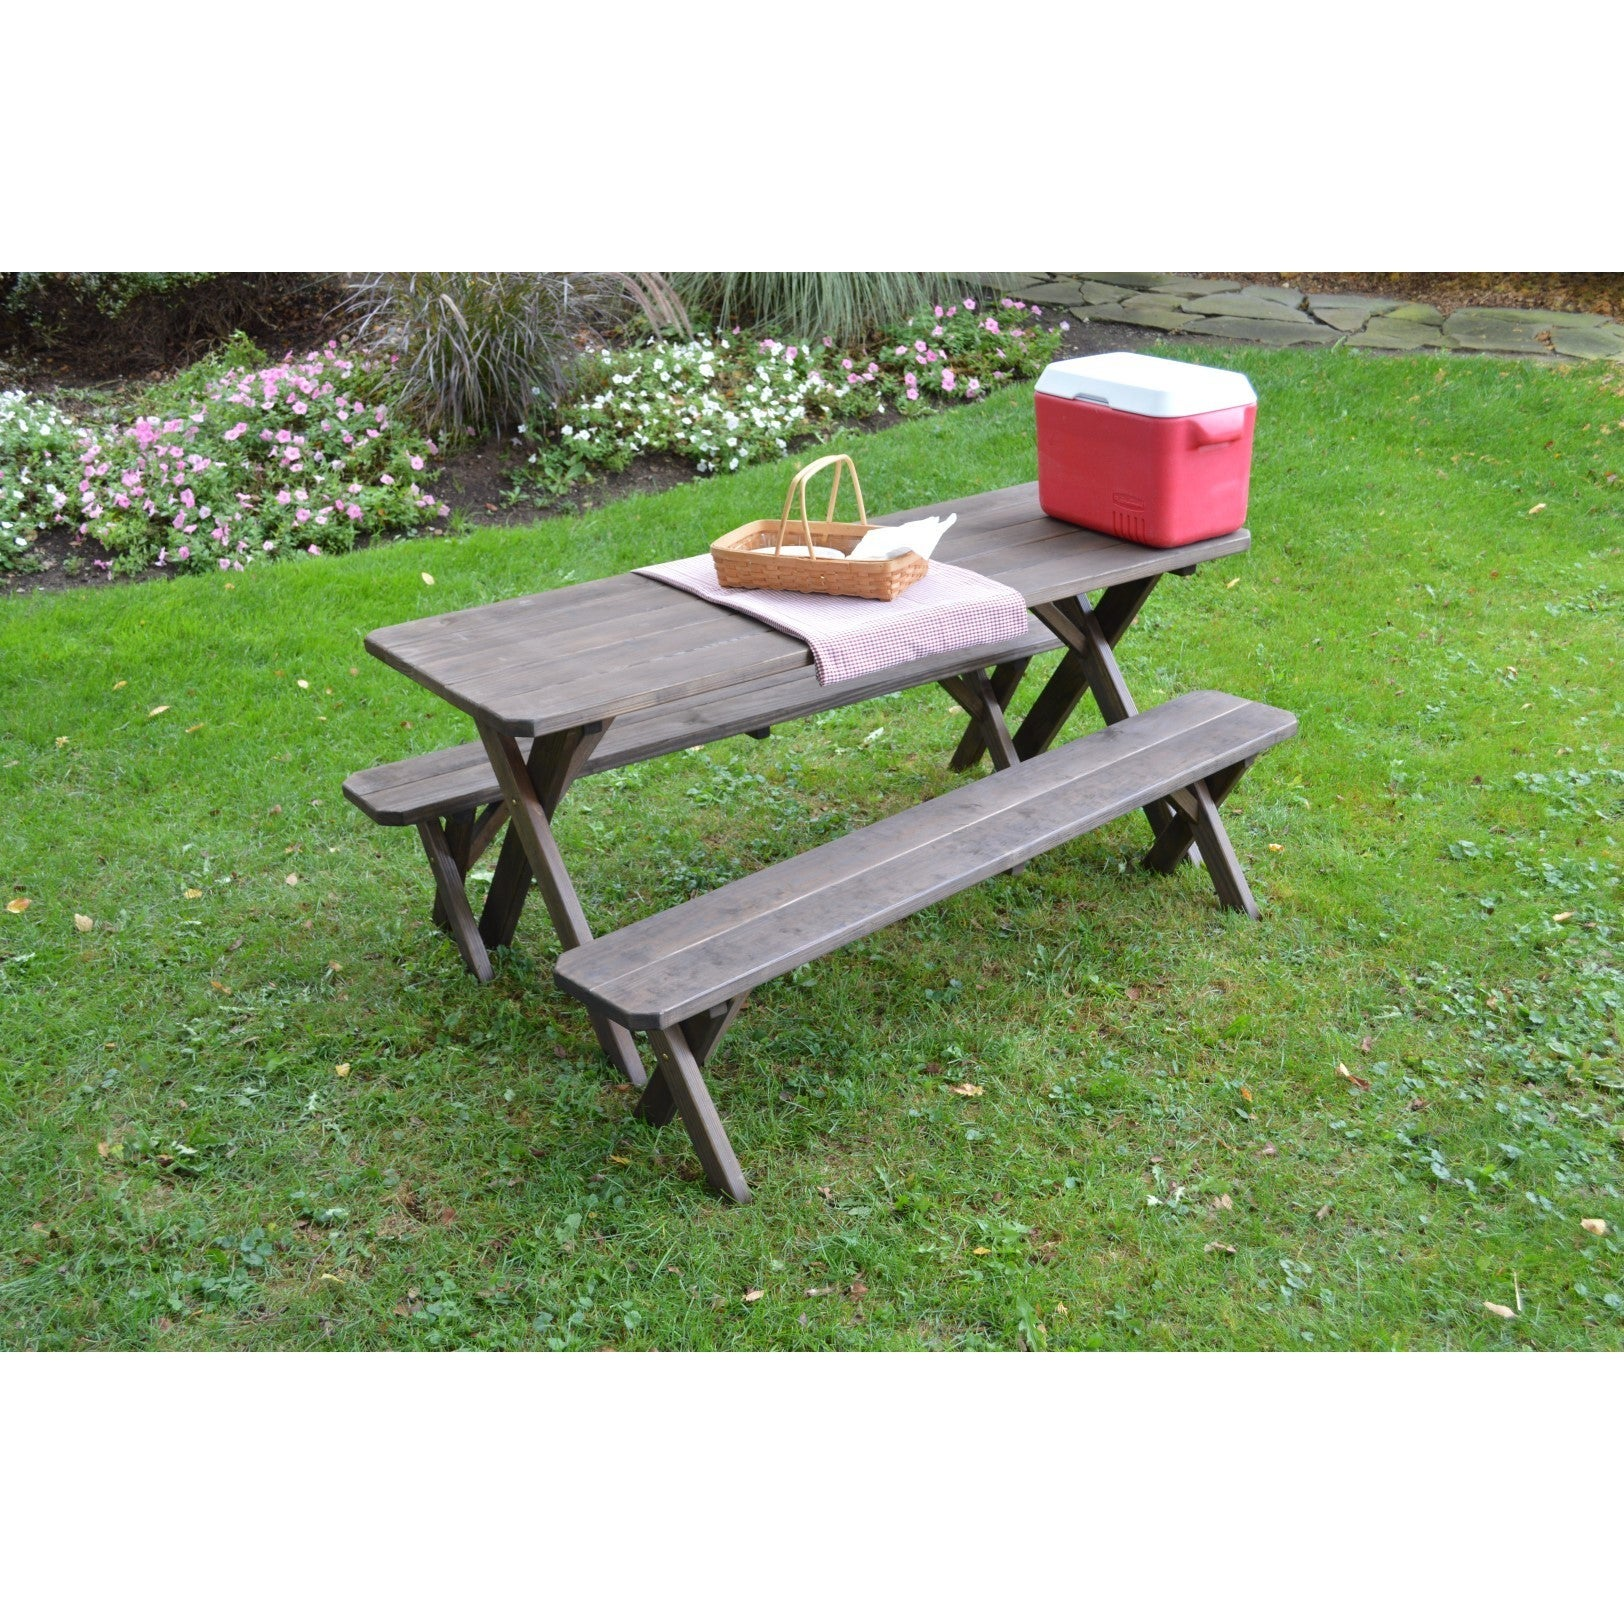 Pressure Treated Pine Cross Leg Picnic Table W Detached Benches Walnut Stain 4 5 6 Or 8ft Free Shipping Today 15372160